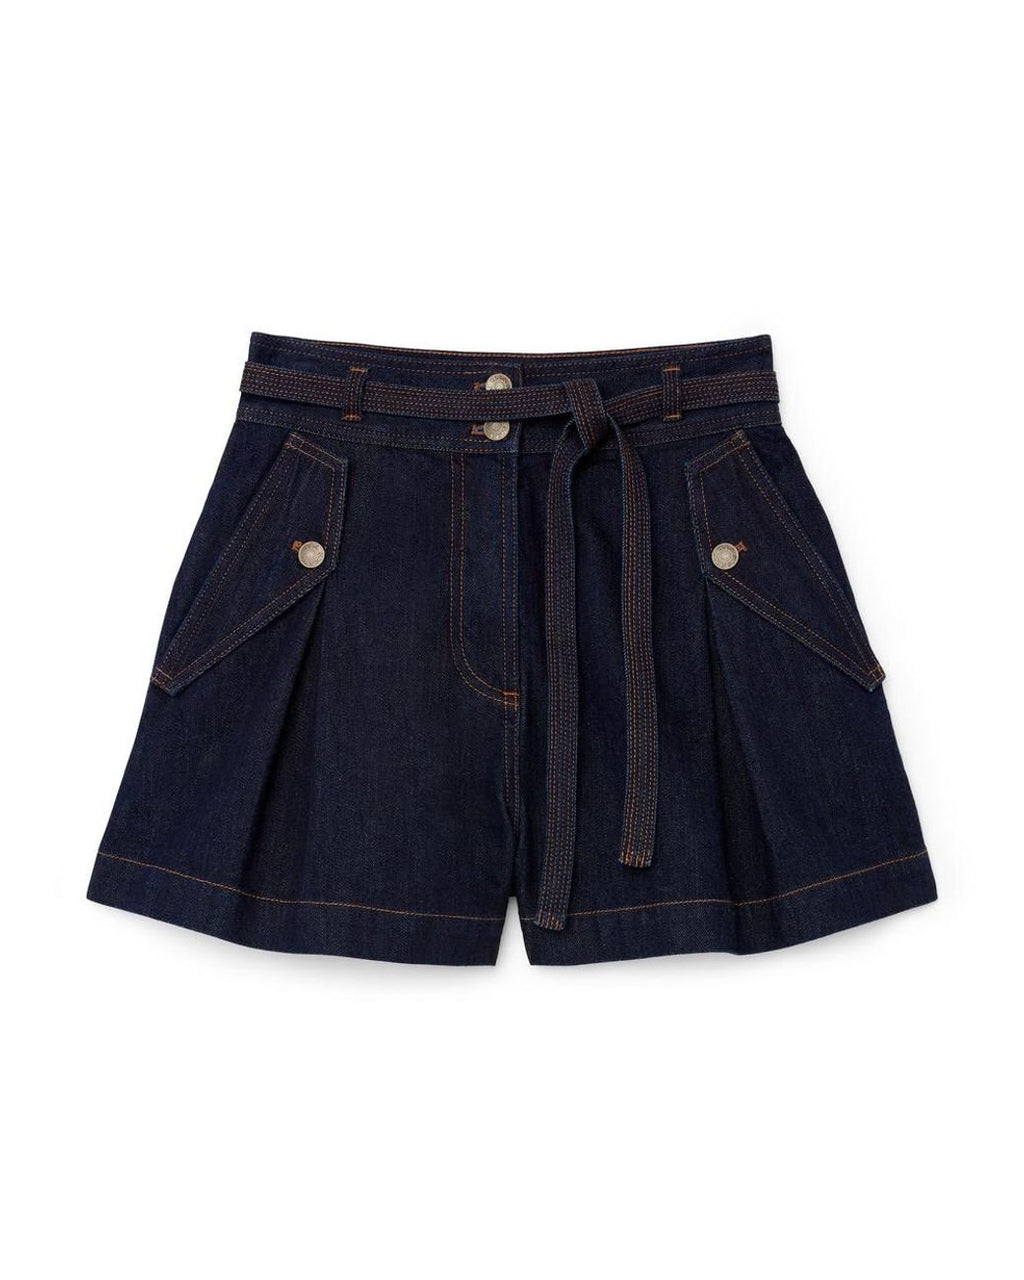 Ulla Johnson Alec Shorts